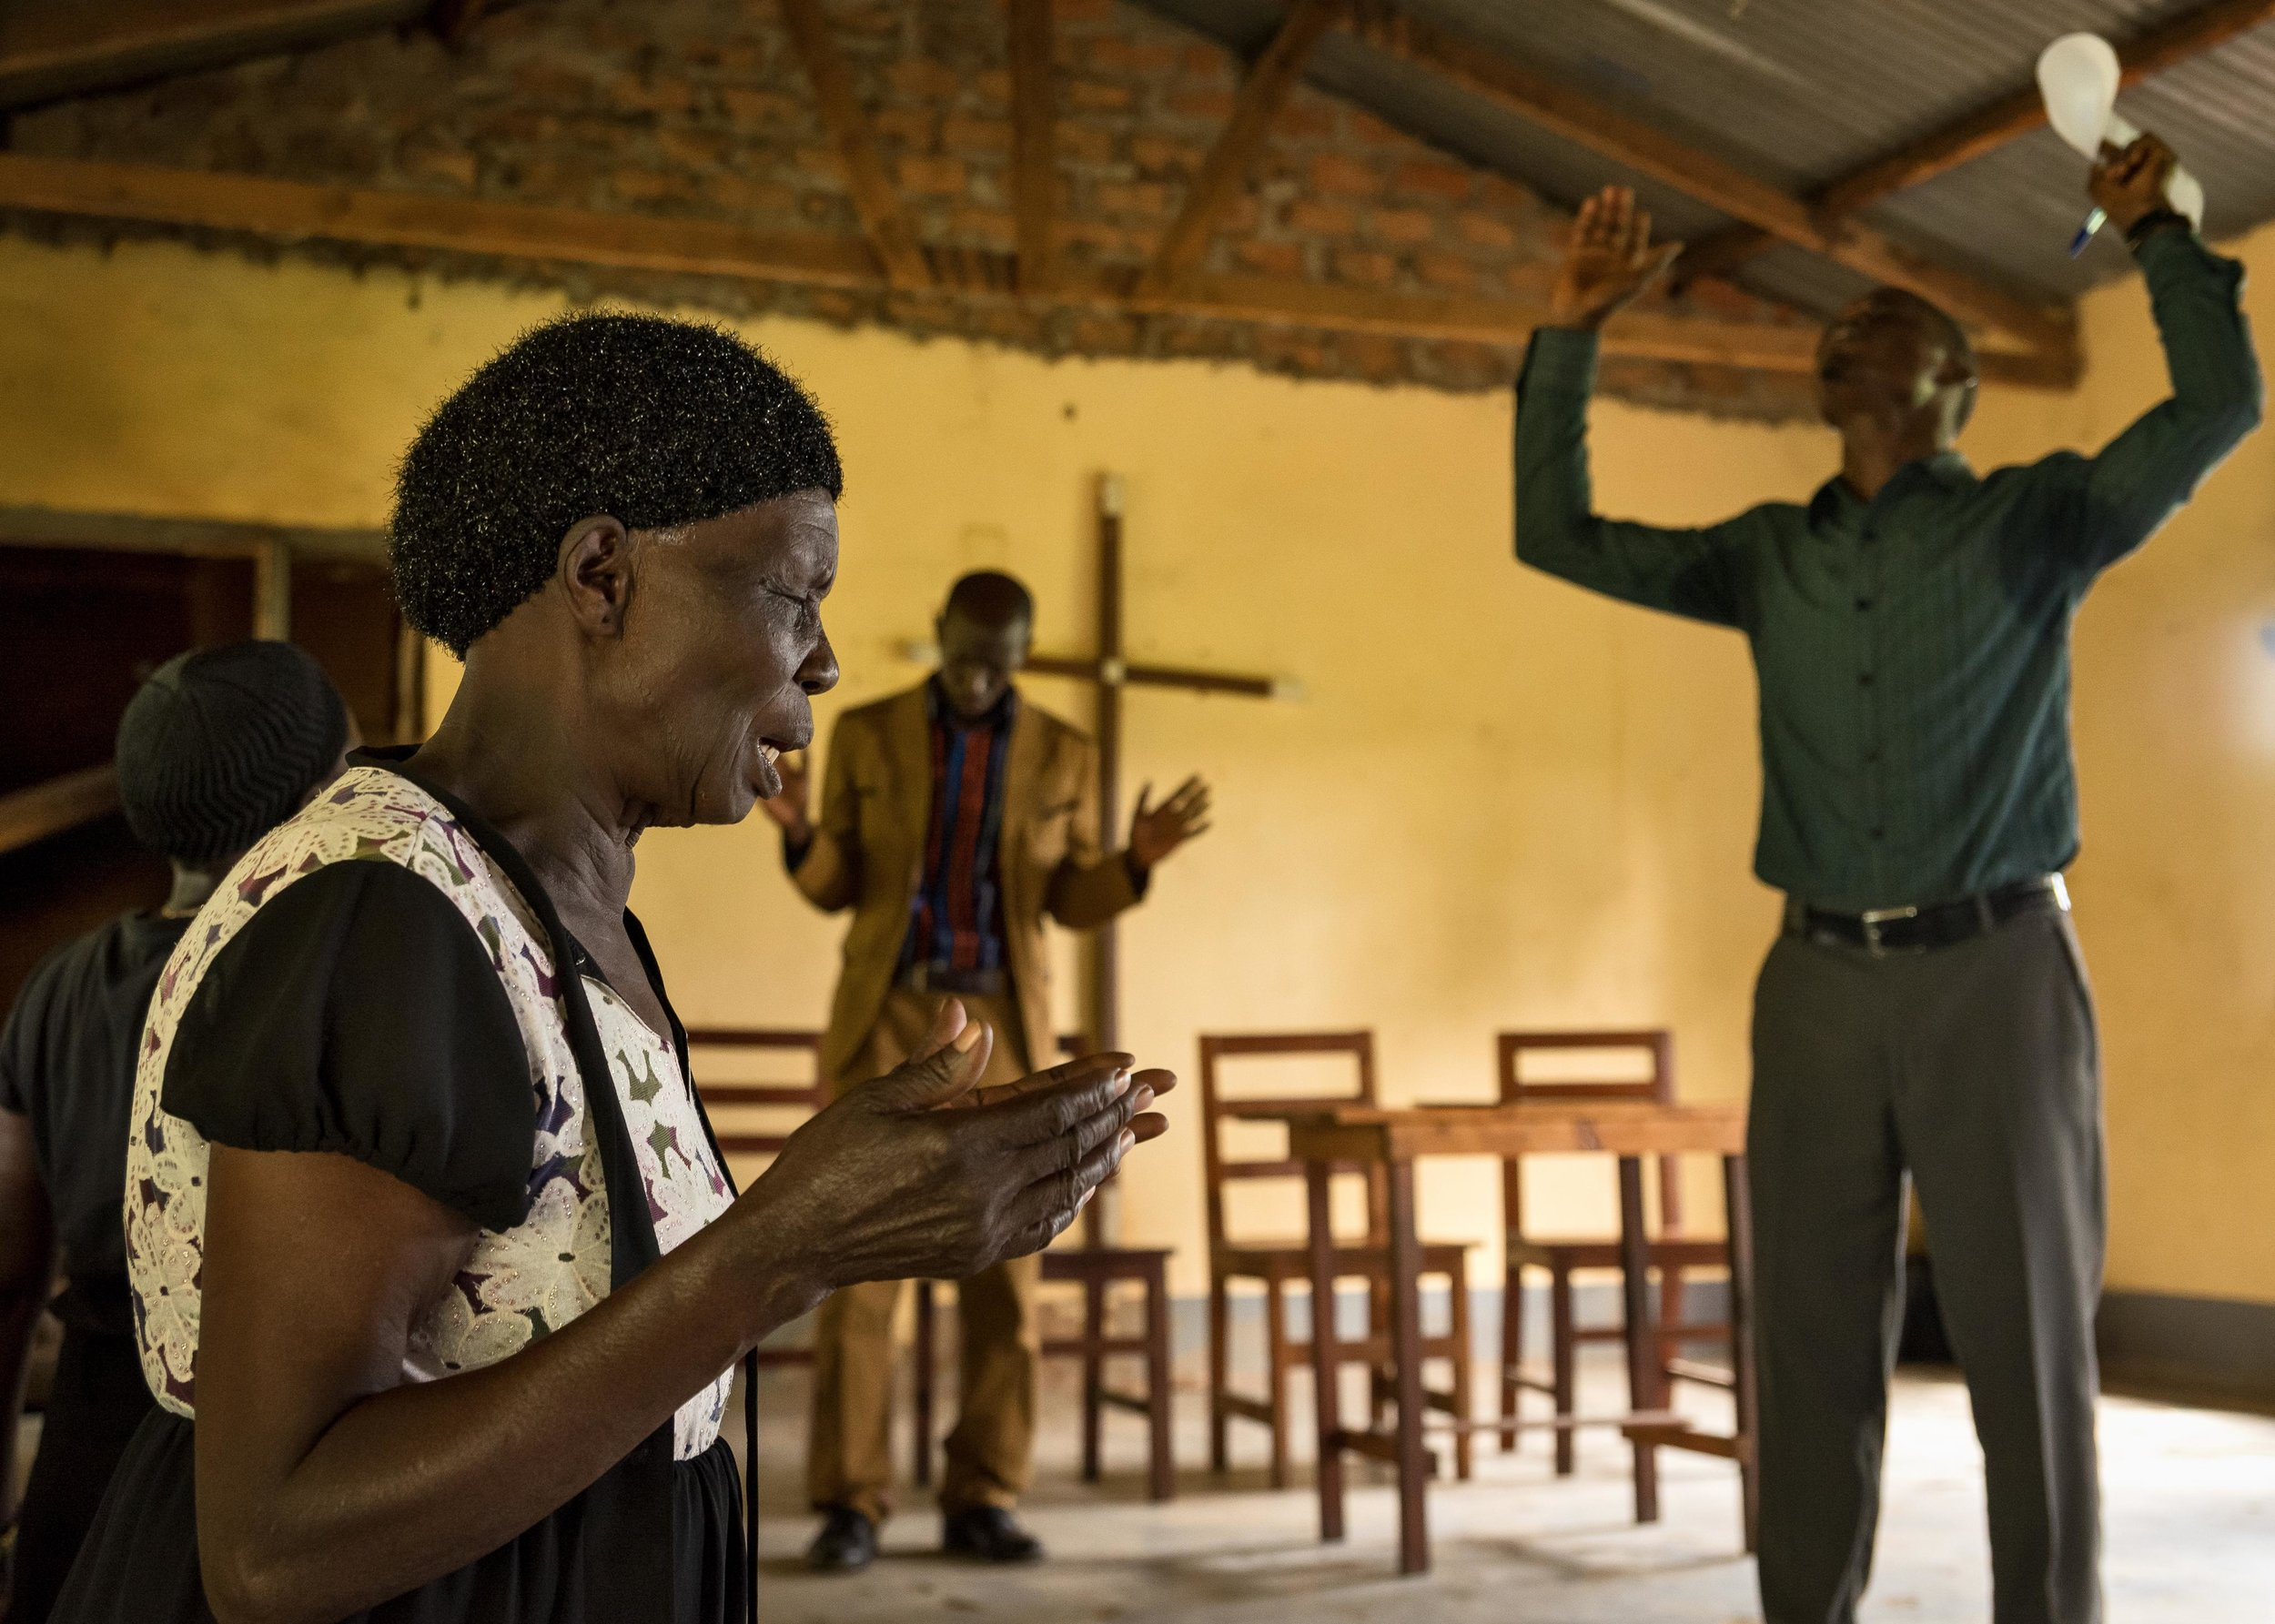 Refugees from South Sudan's Western Equatoria region gather for the monthly Prayers for the Healing of South Sudan service in northern Uganda.